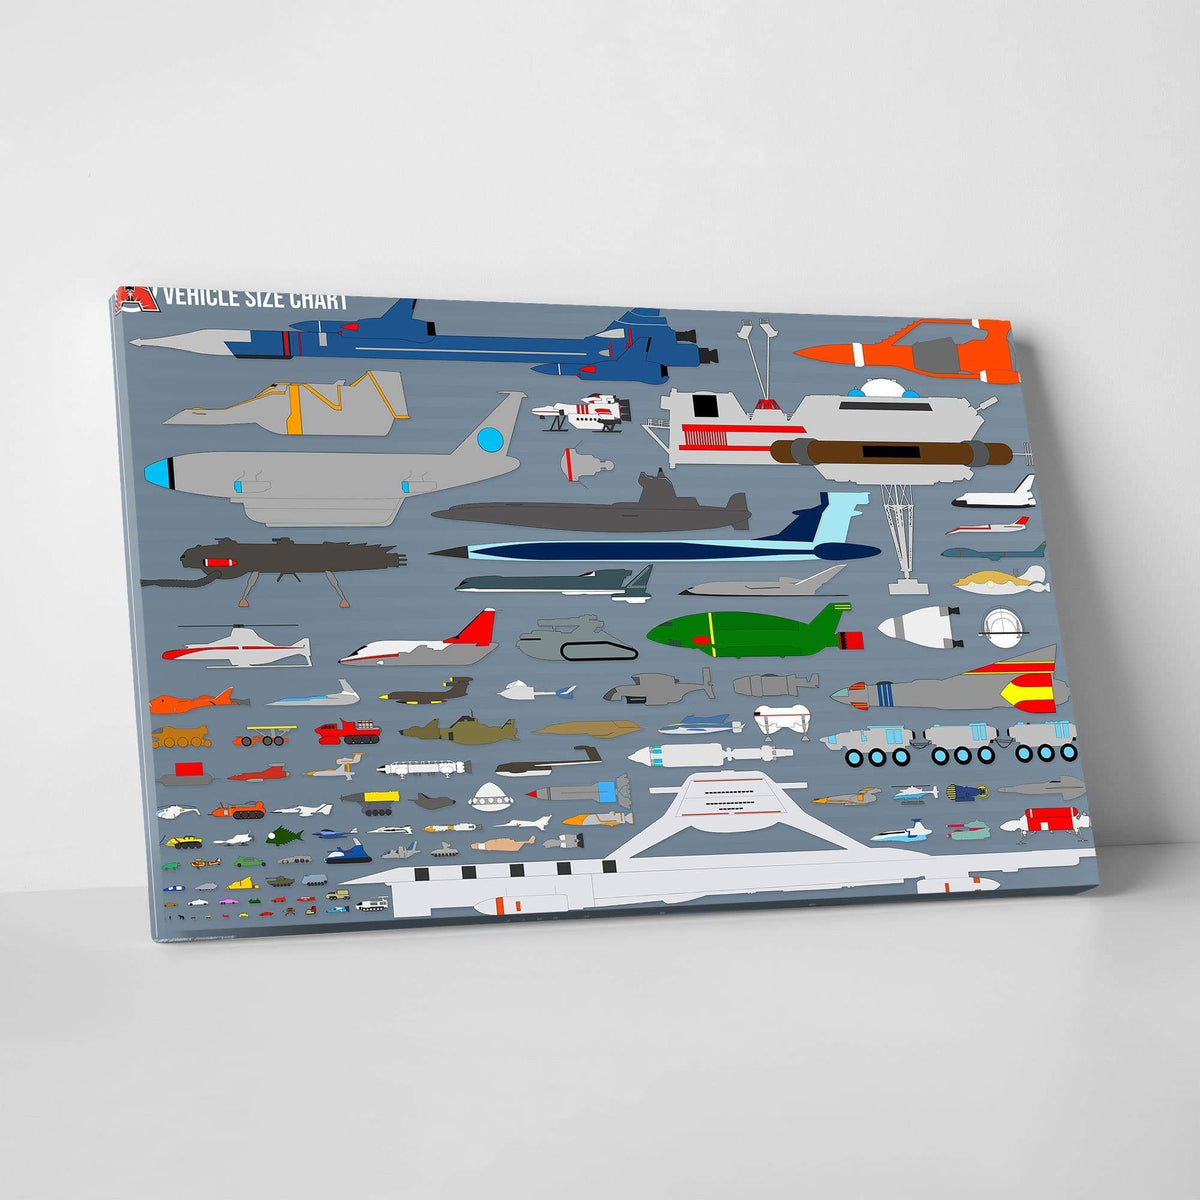 Gerry Anderson Vehicle Size Chart Canvas Print - The Gerry Anderson Store